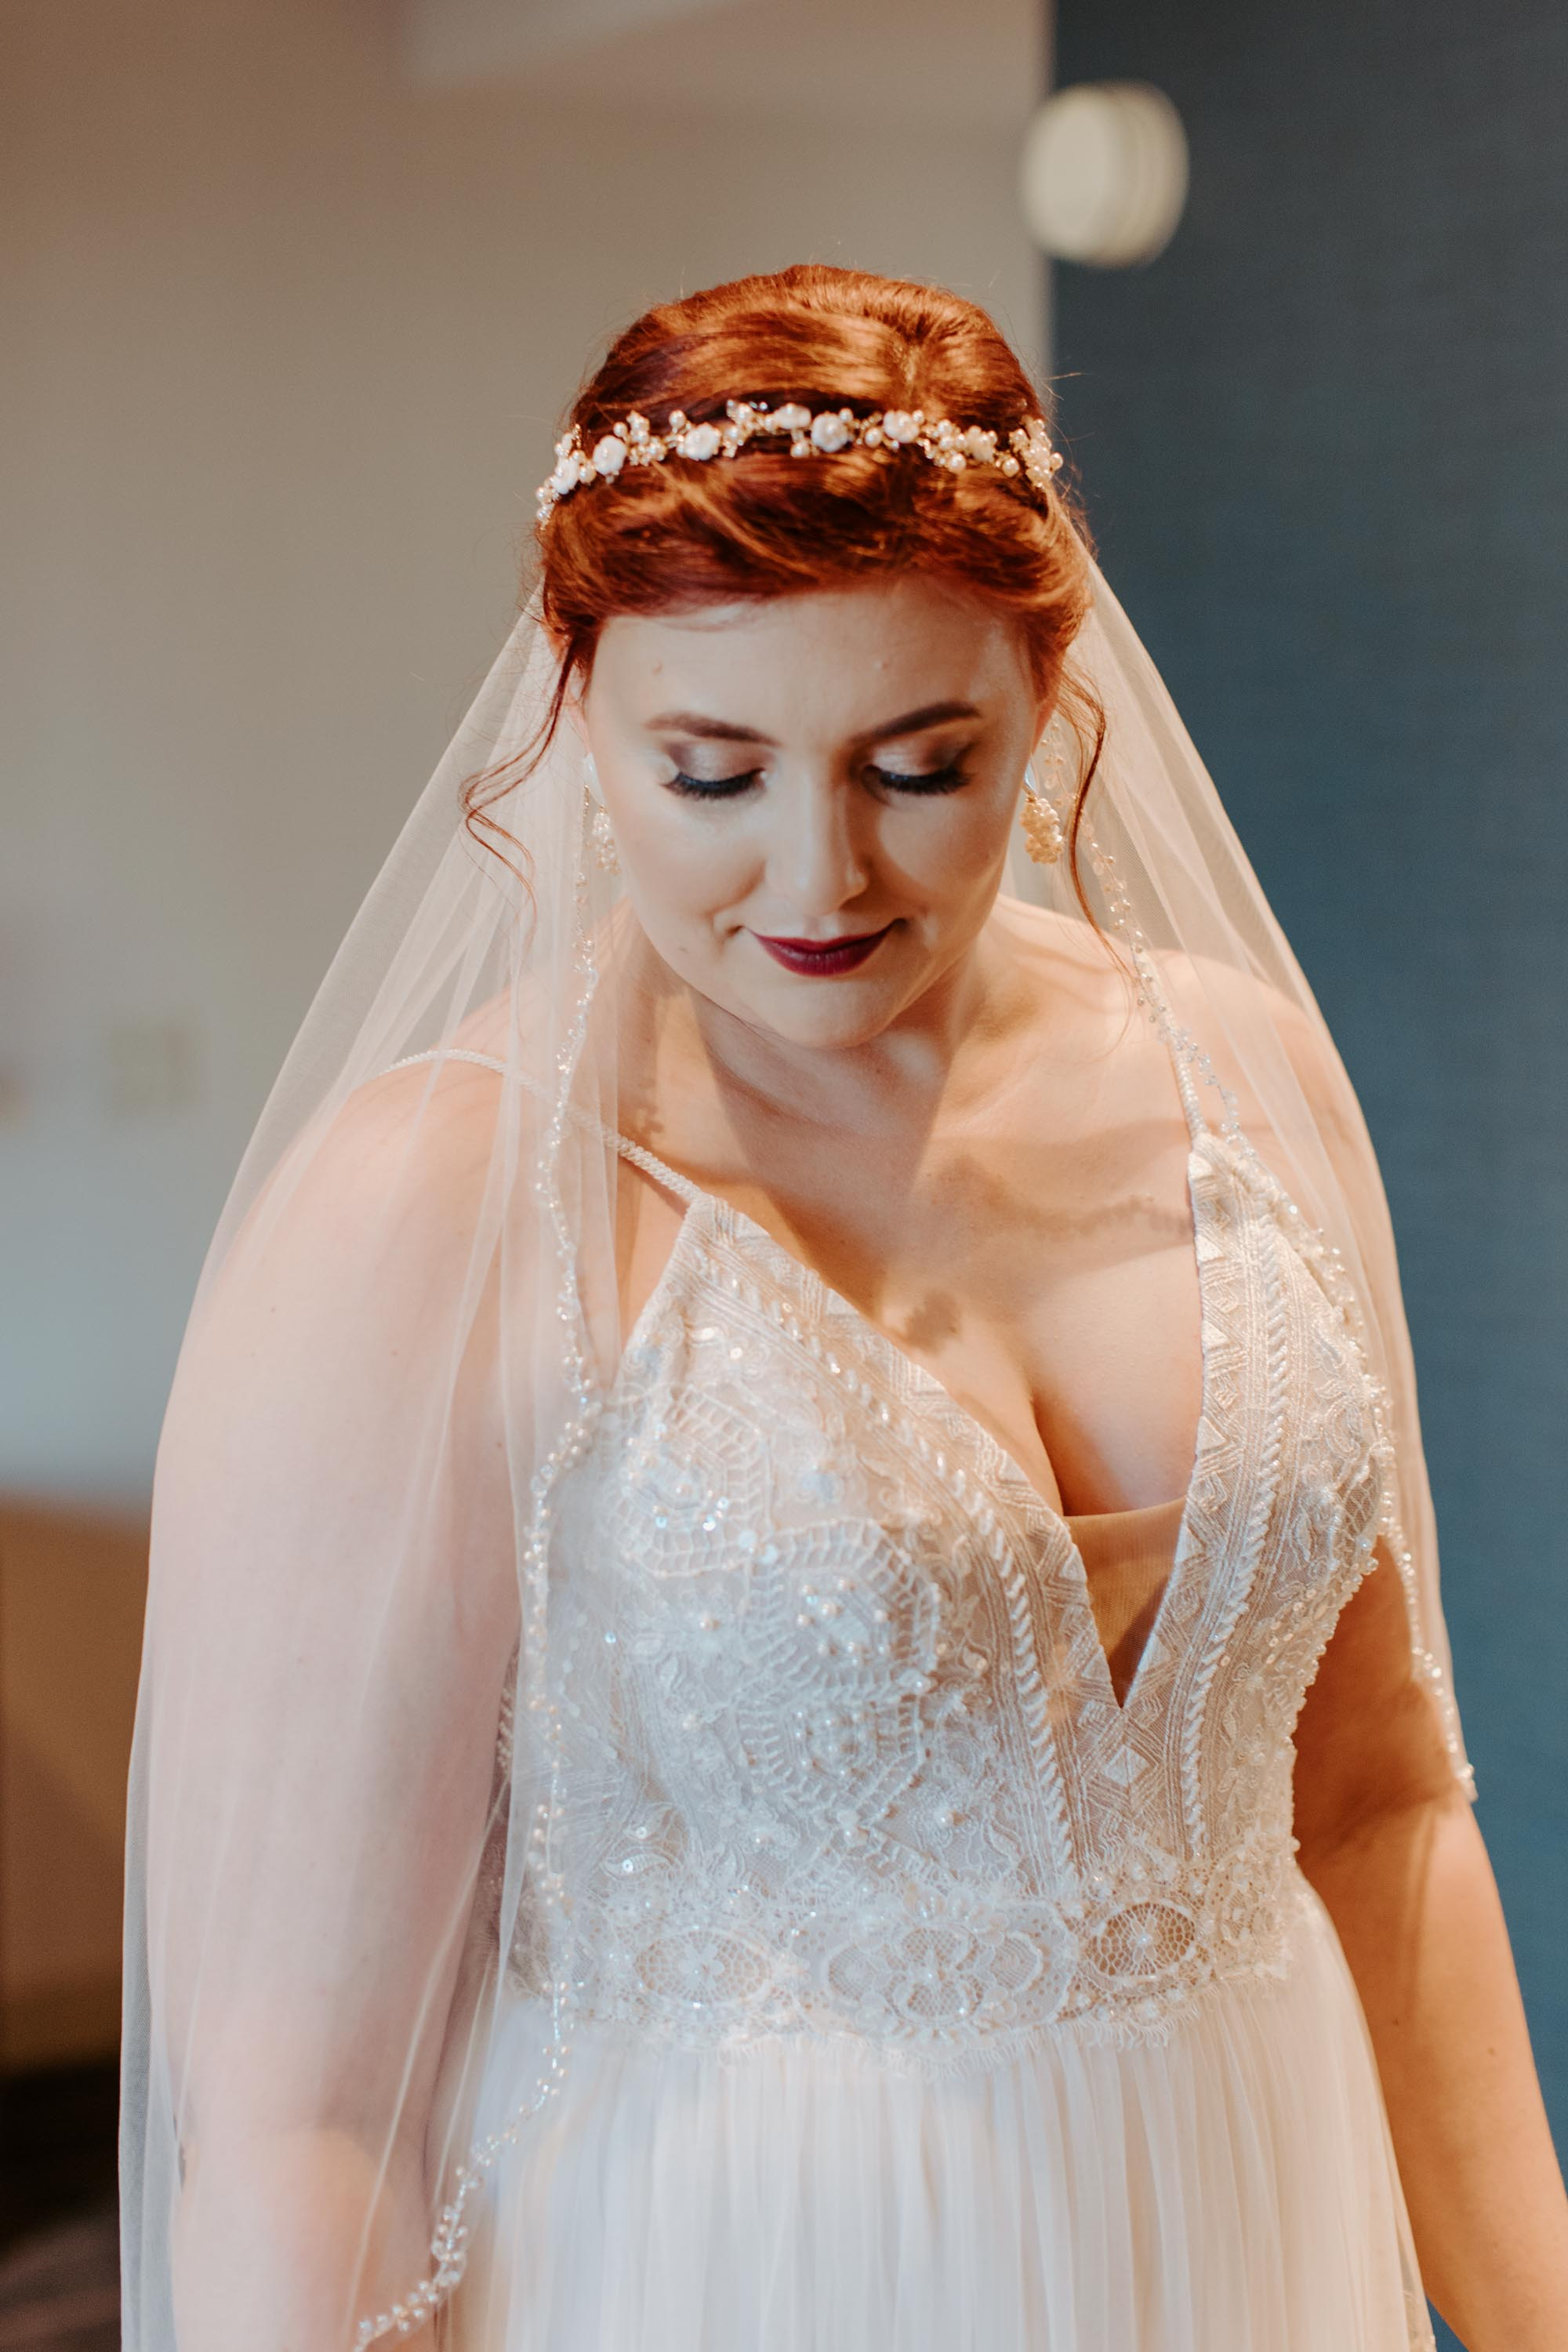 Bridal photo of Dallas TX bride with red hair